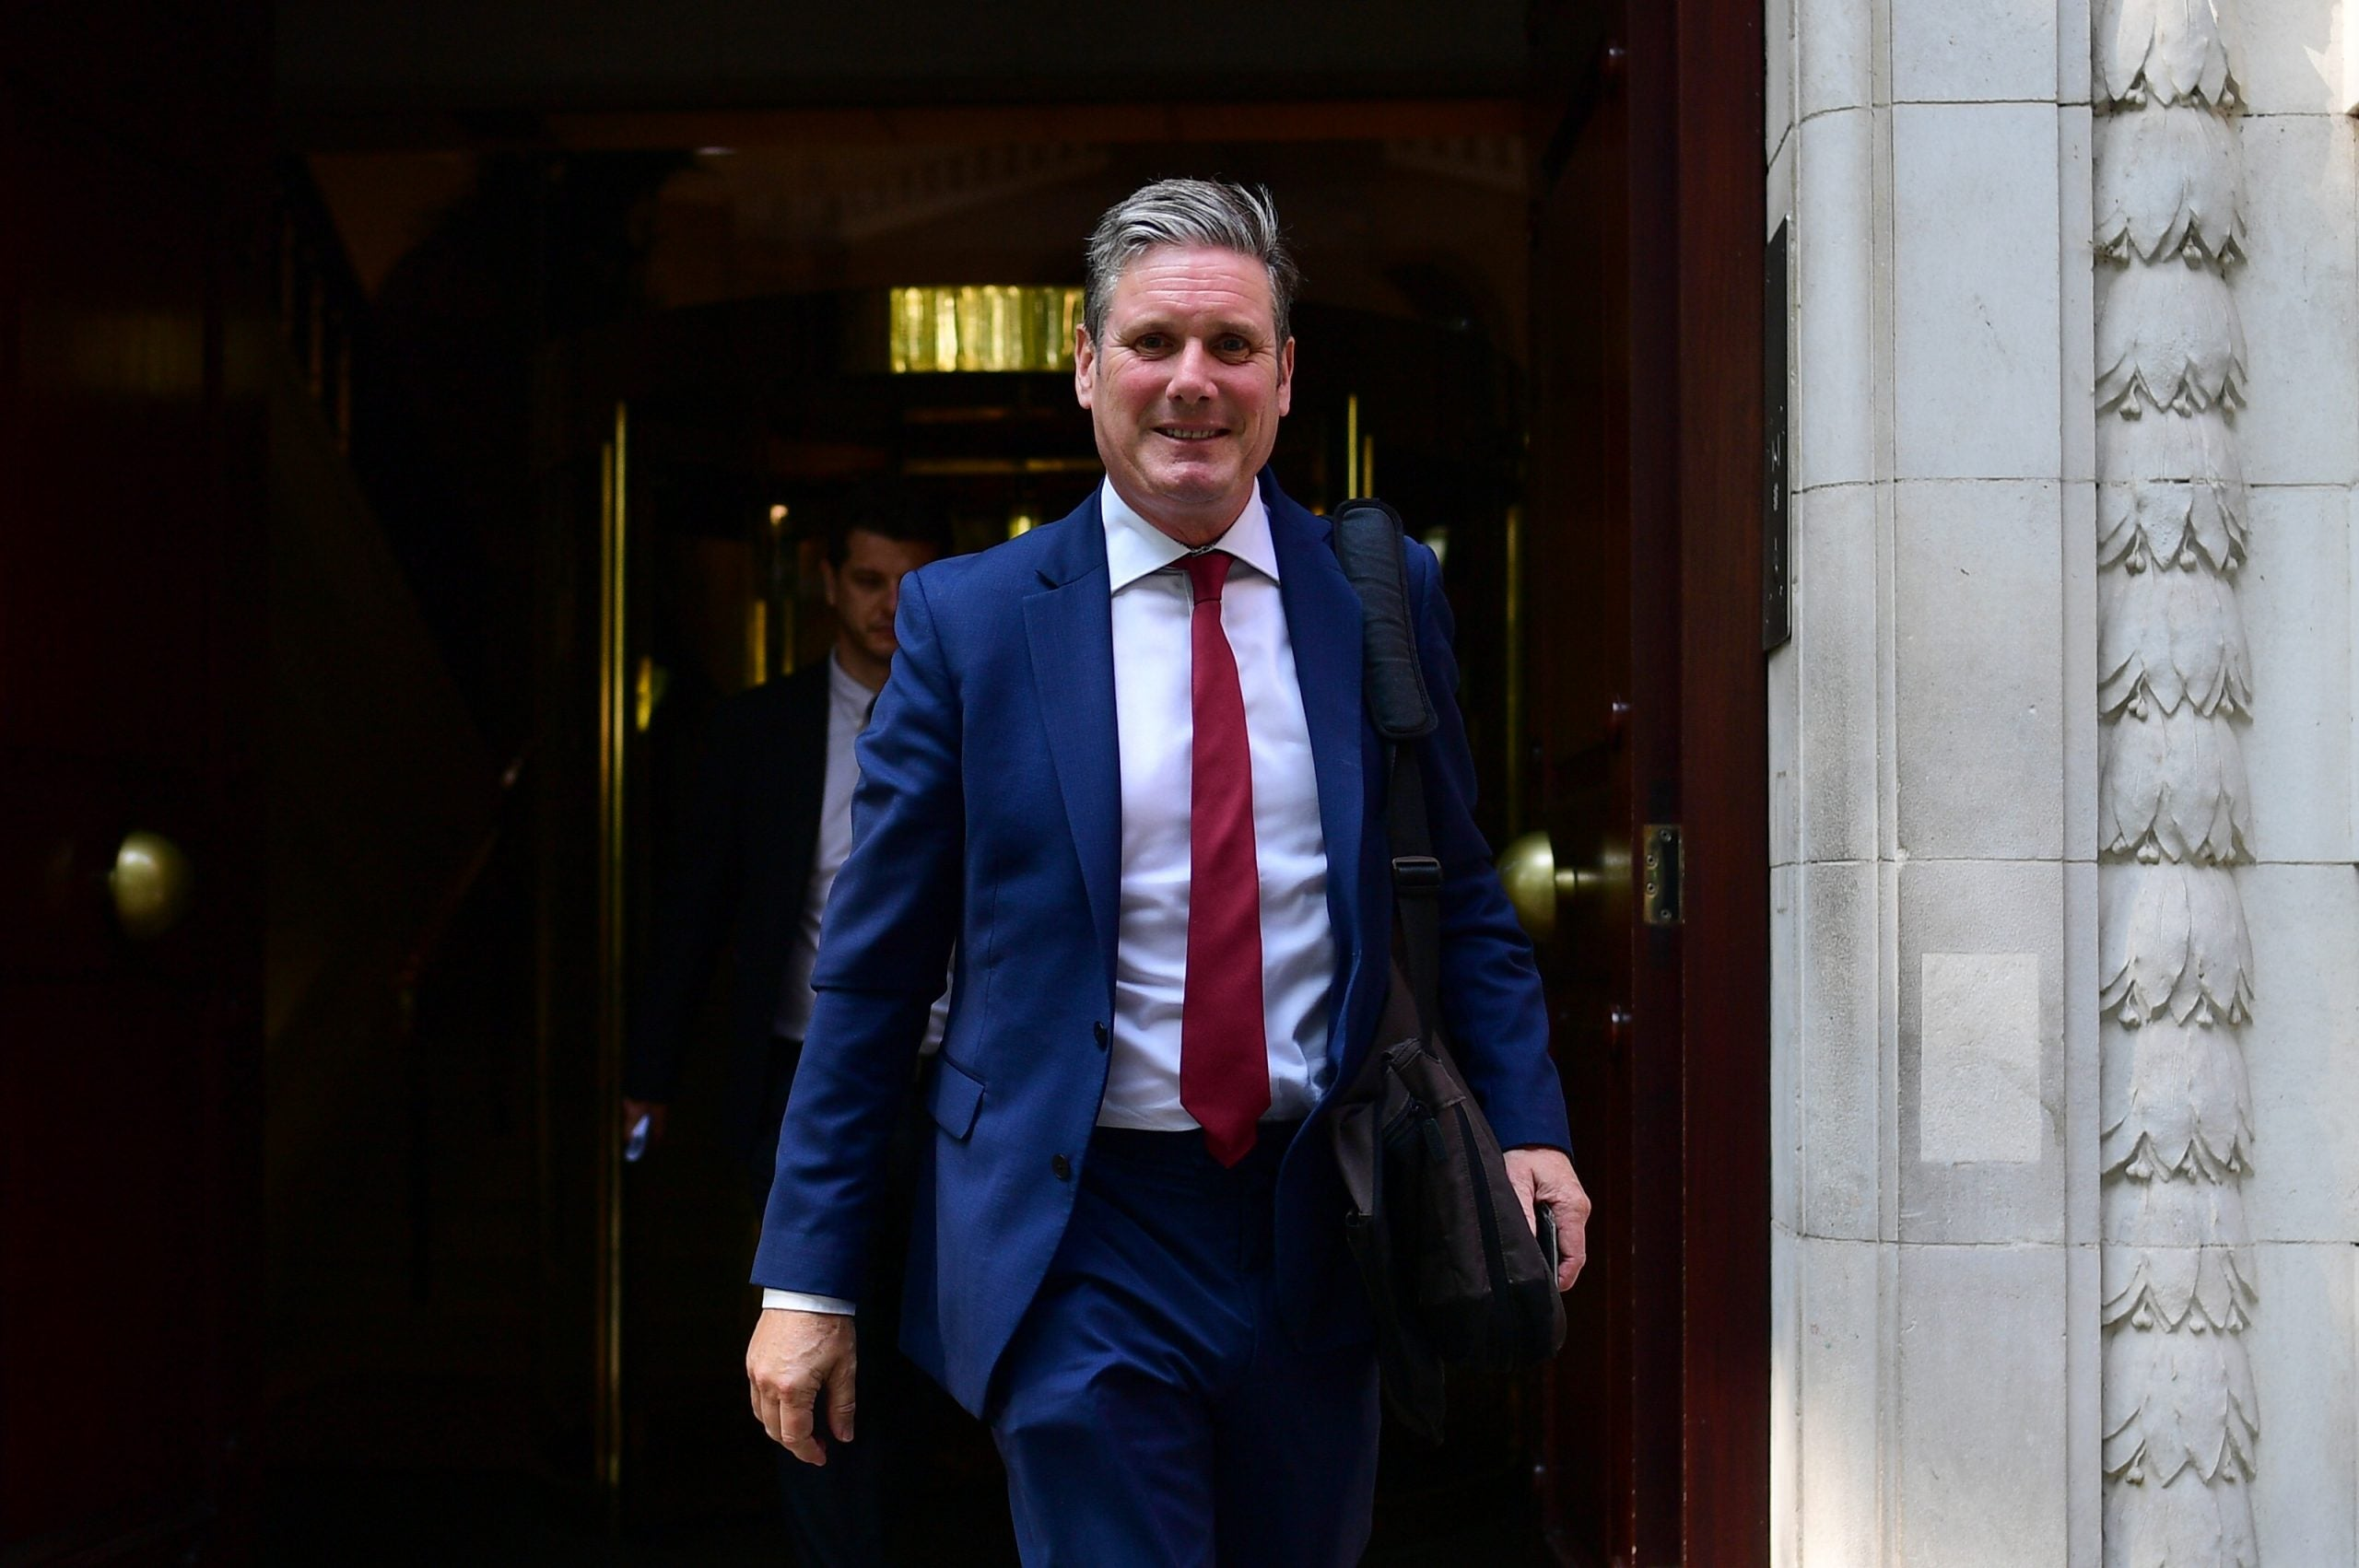 His Labour leadership campaign is off to a slick start – but the real Keir Starmer remains elusive